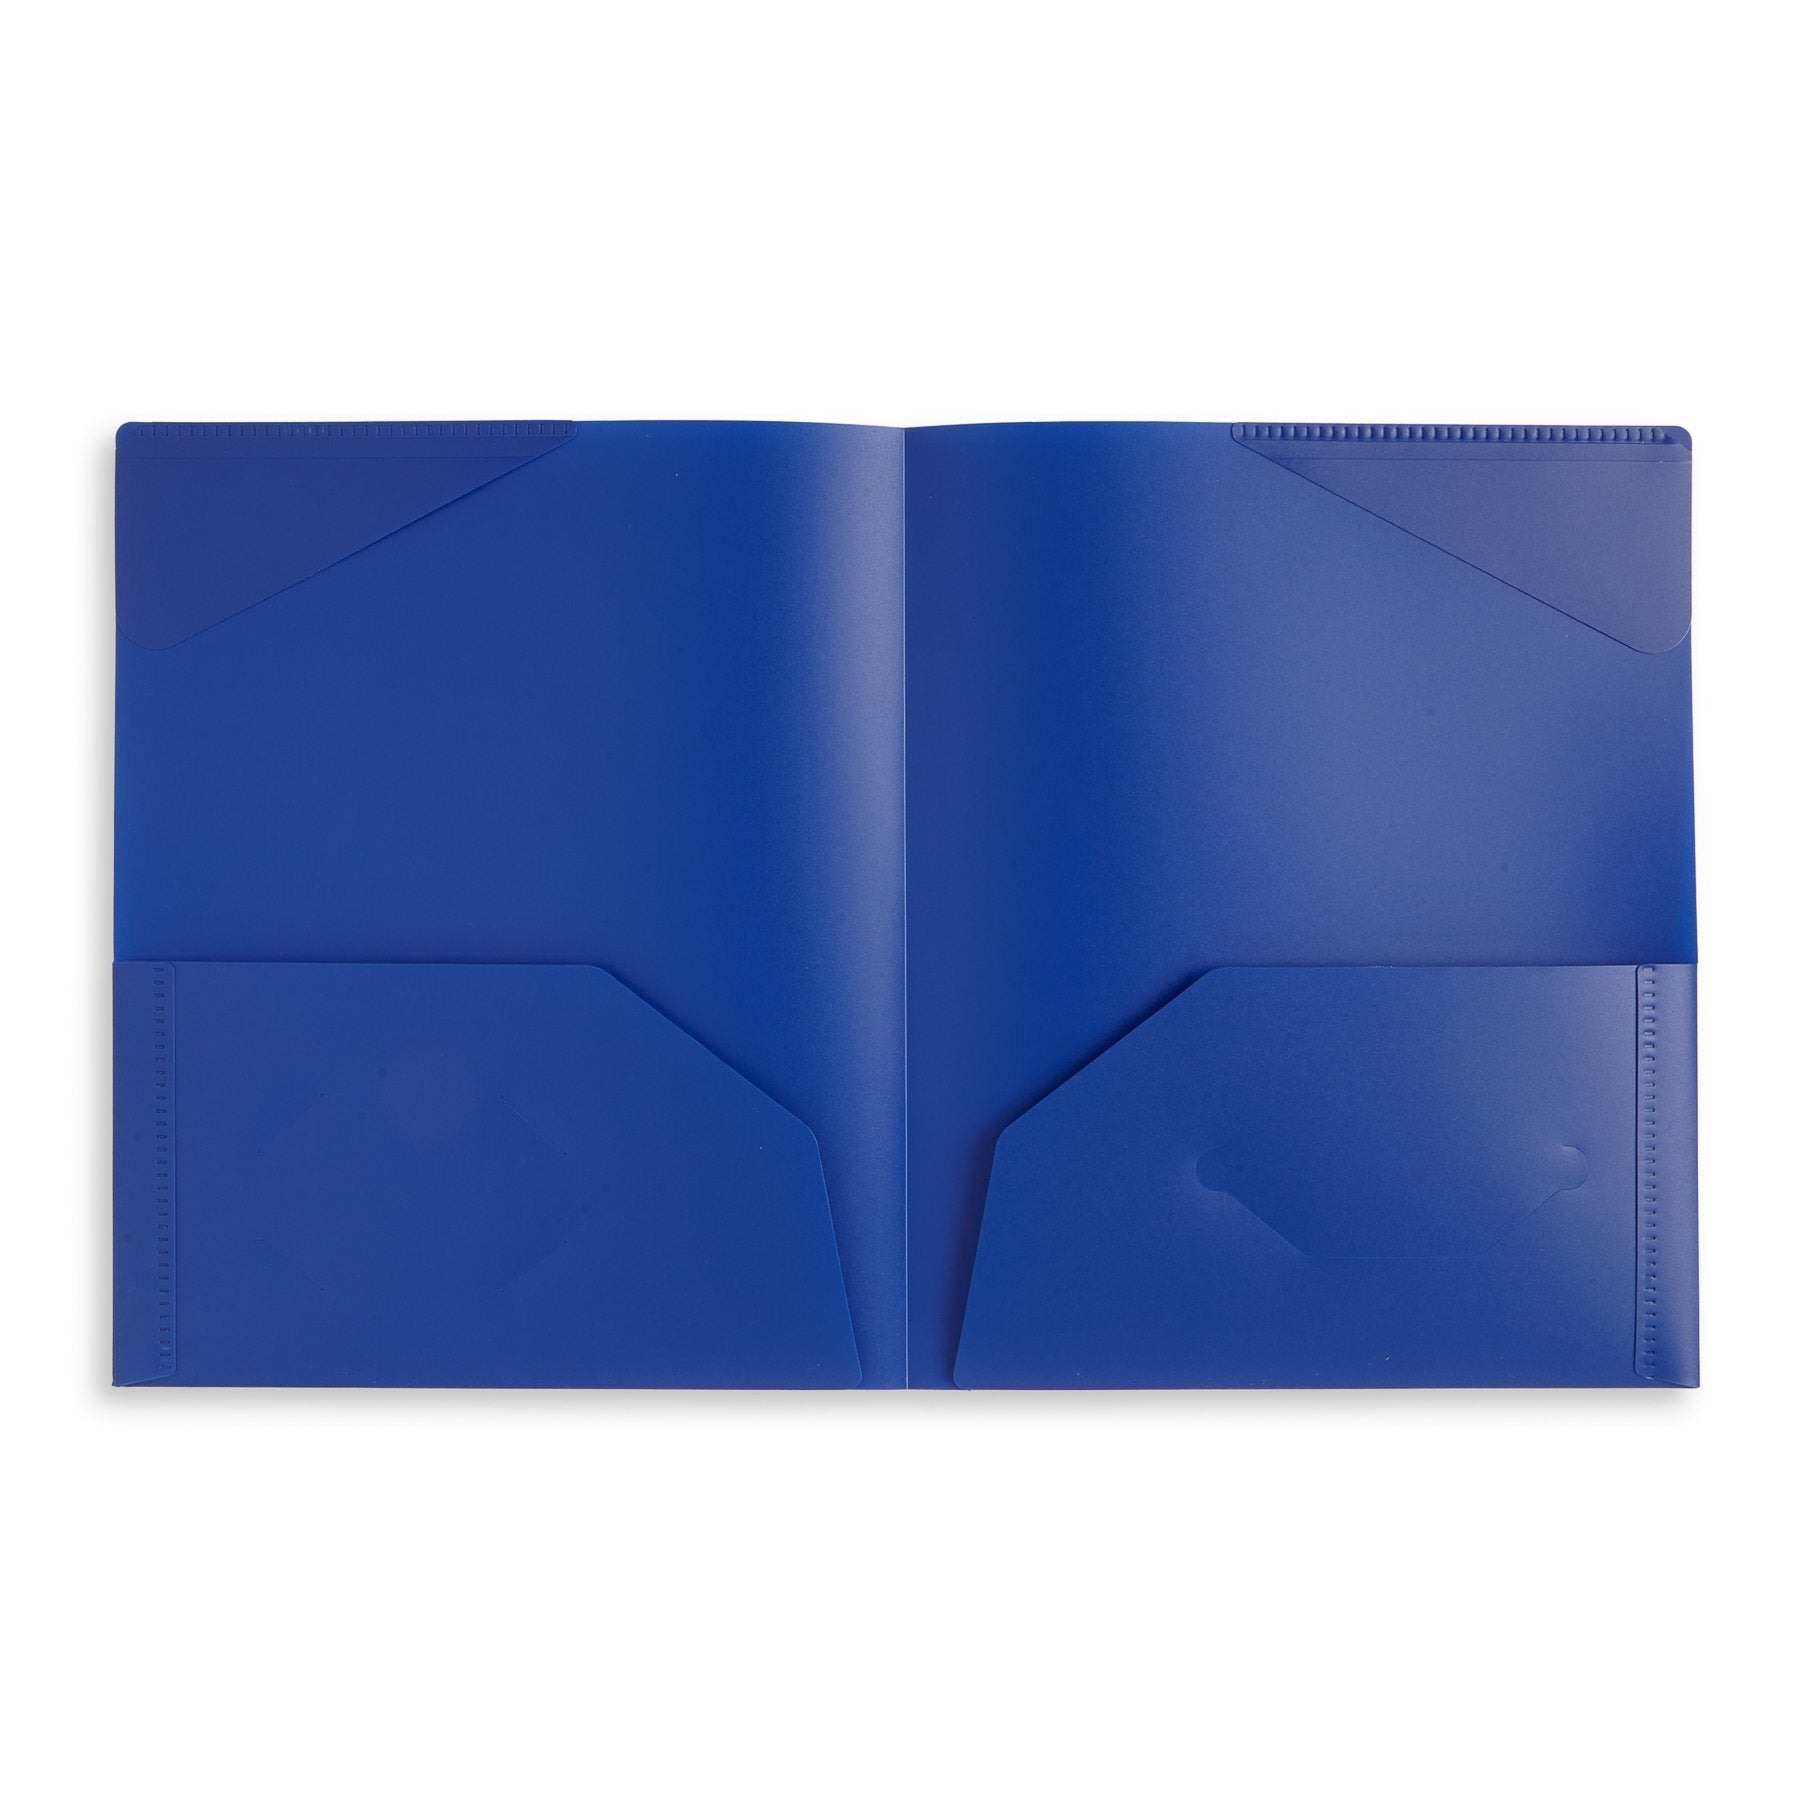 12 Pack Durable 2 Pocket Folder with Corner Flaps Inside to Hold Papers in Place Assorted Colors Blue Summit Supplies Plastic Two Pocket Folders Reinforced Corners